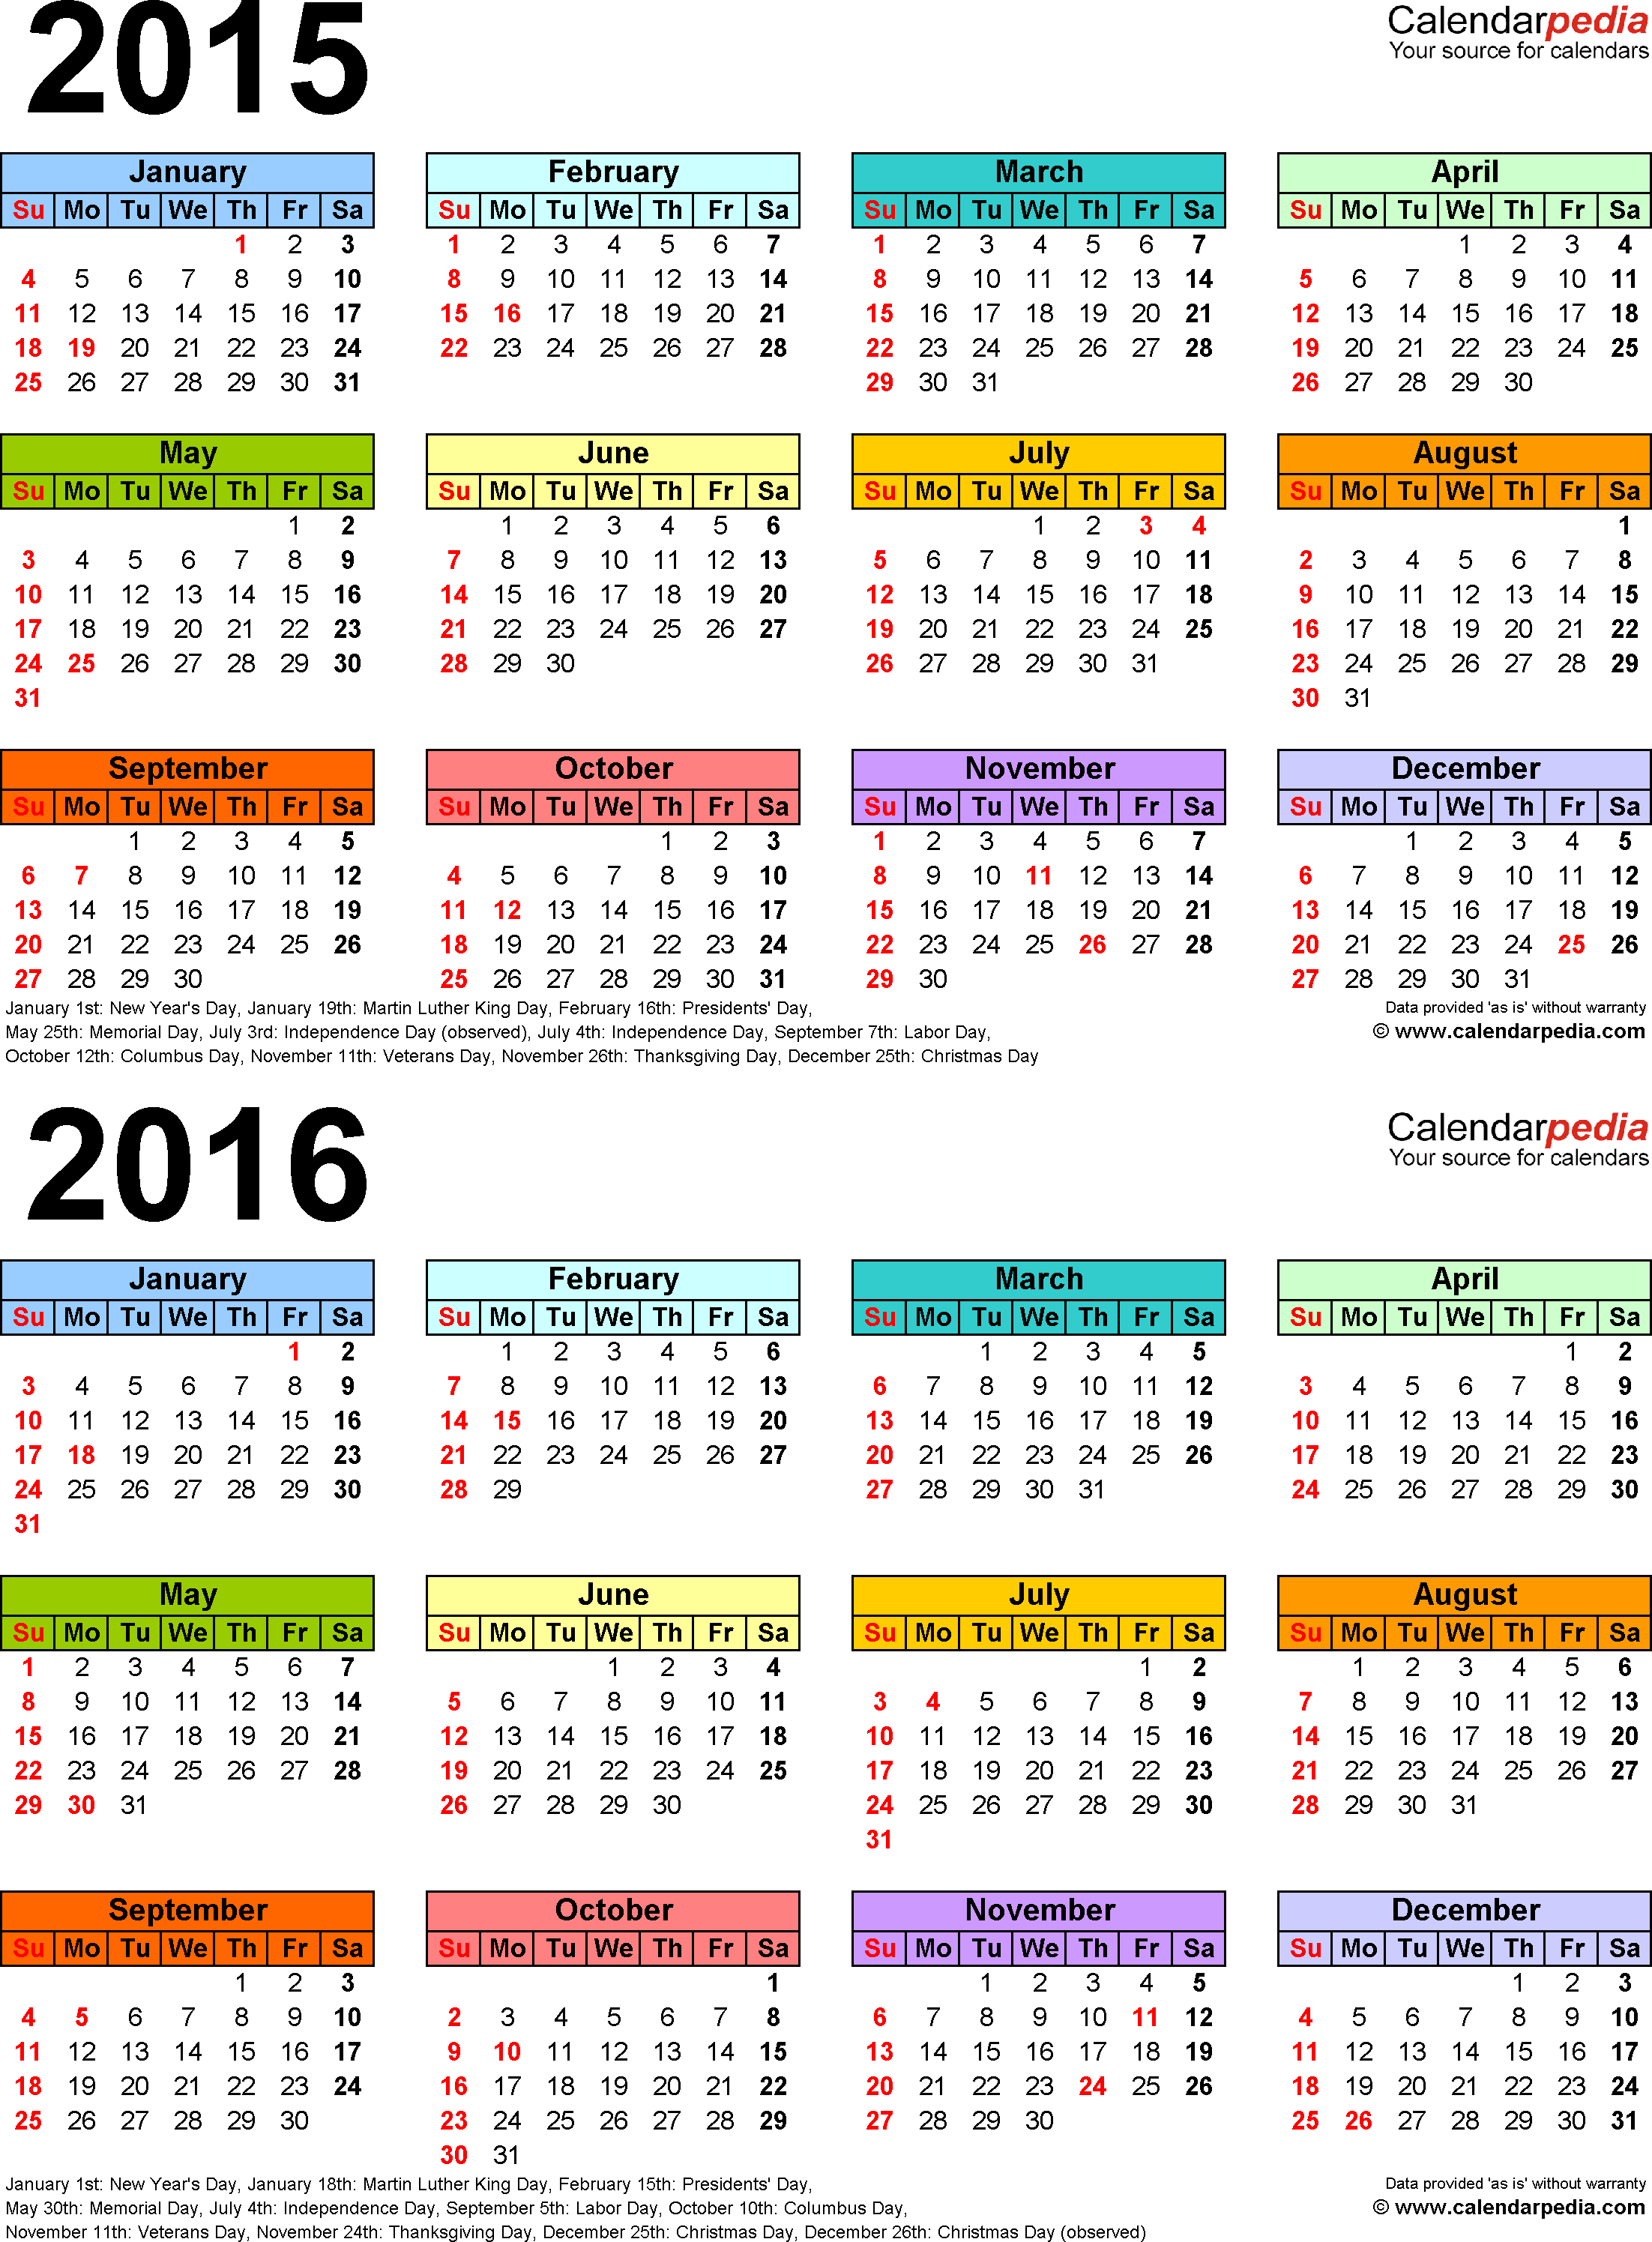 Template 4: PDF template for two year calendar 2015/2016 (portrait orientation, 1 page, in color)